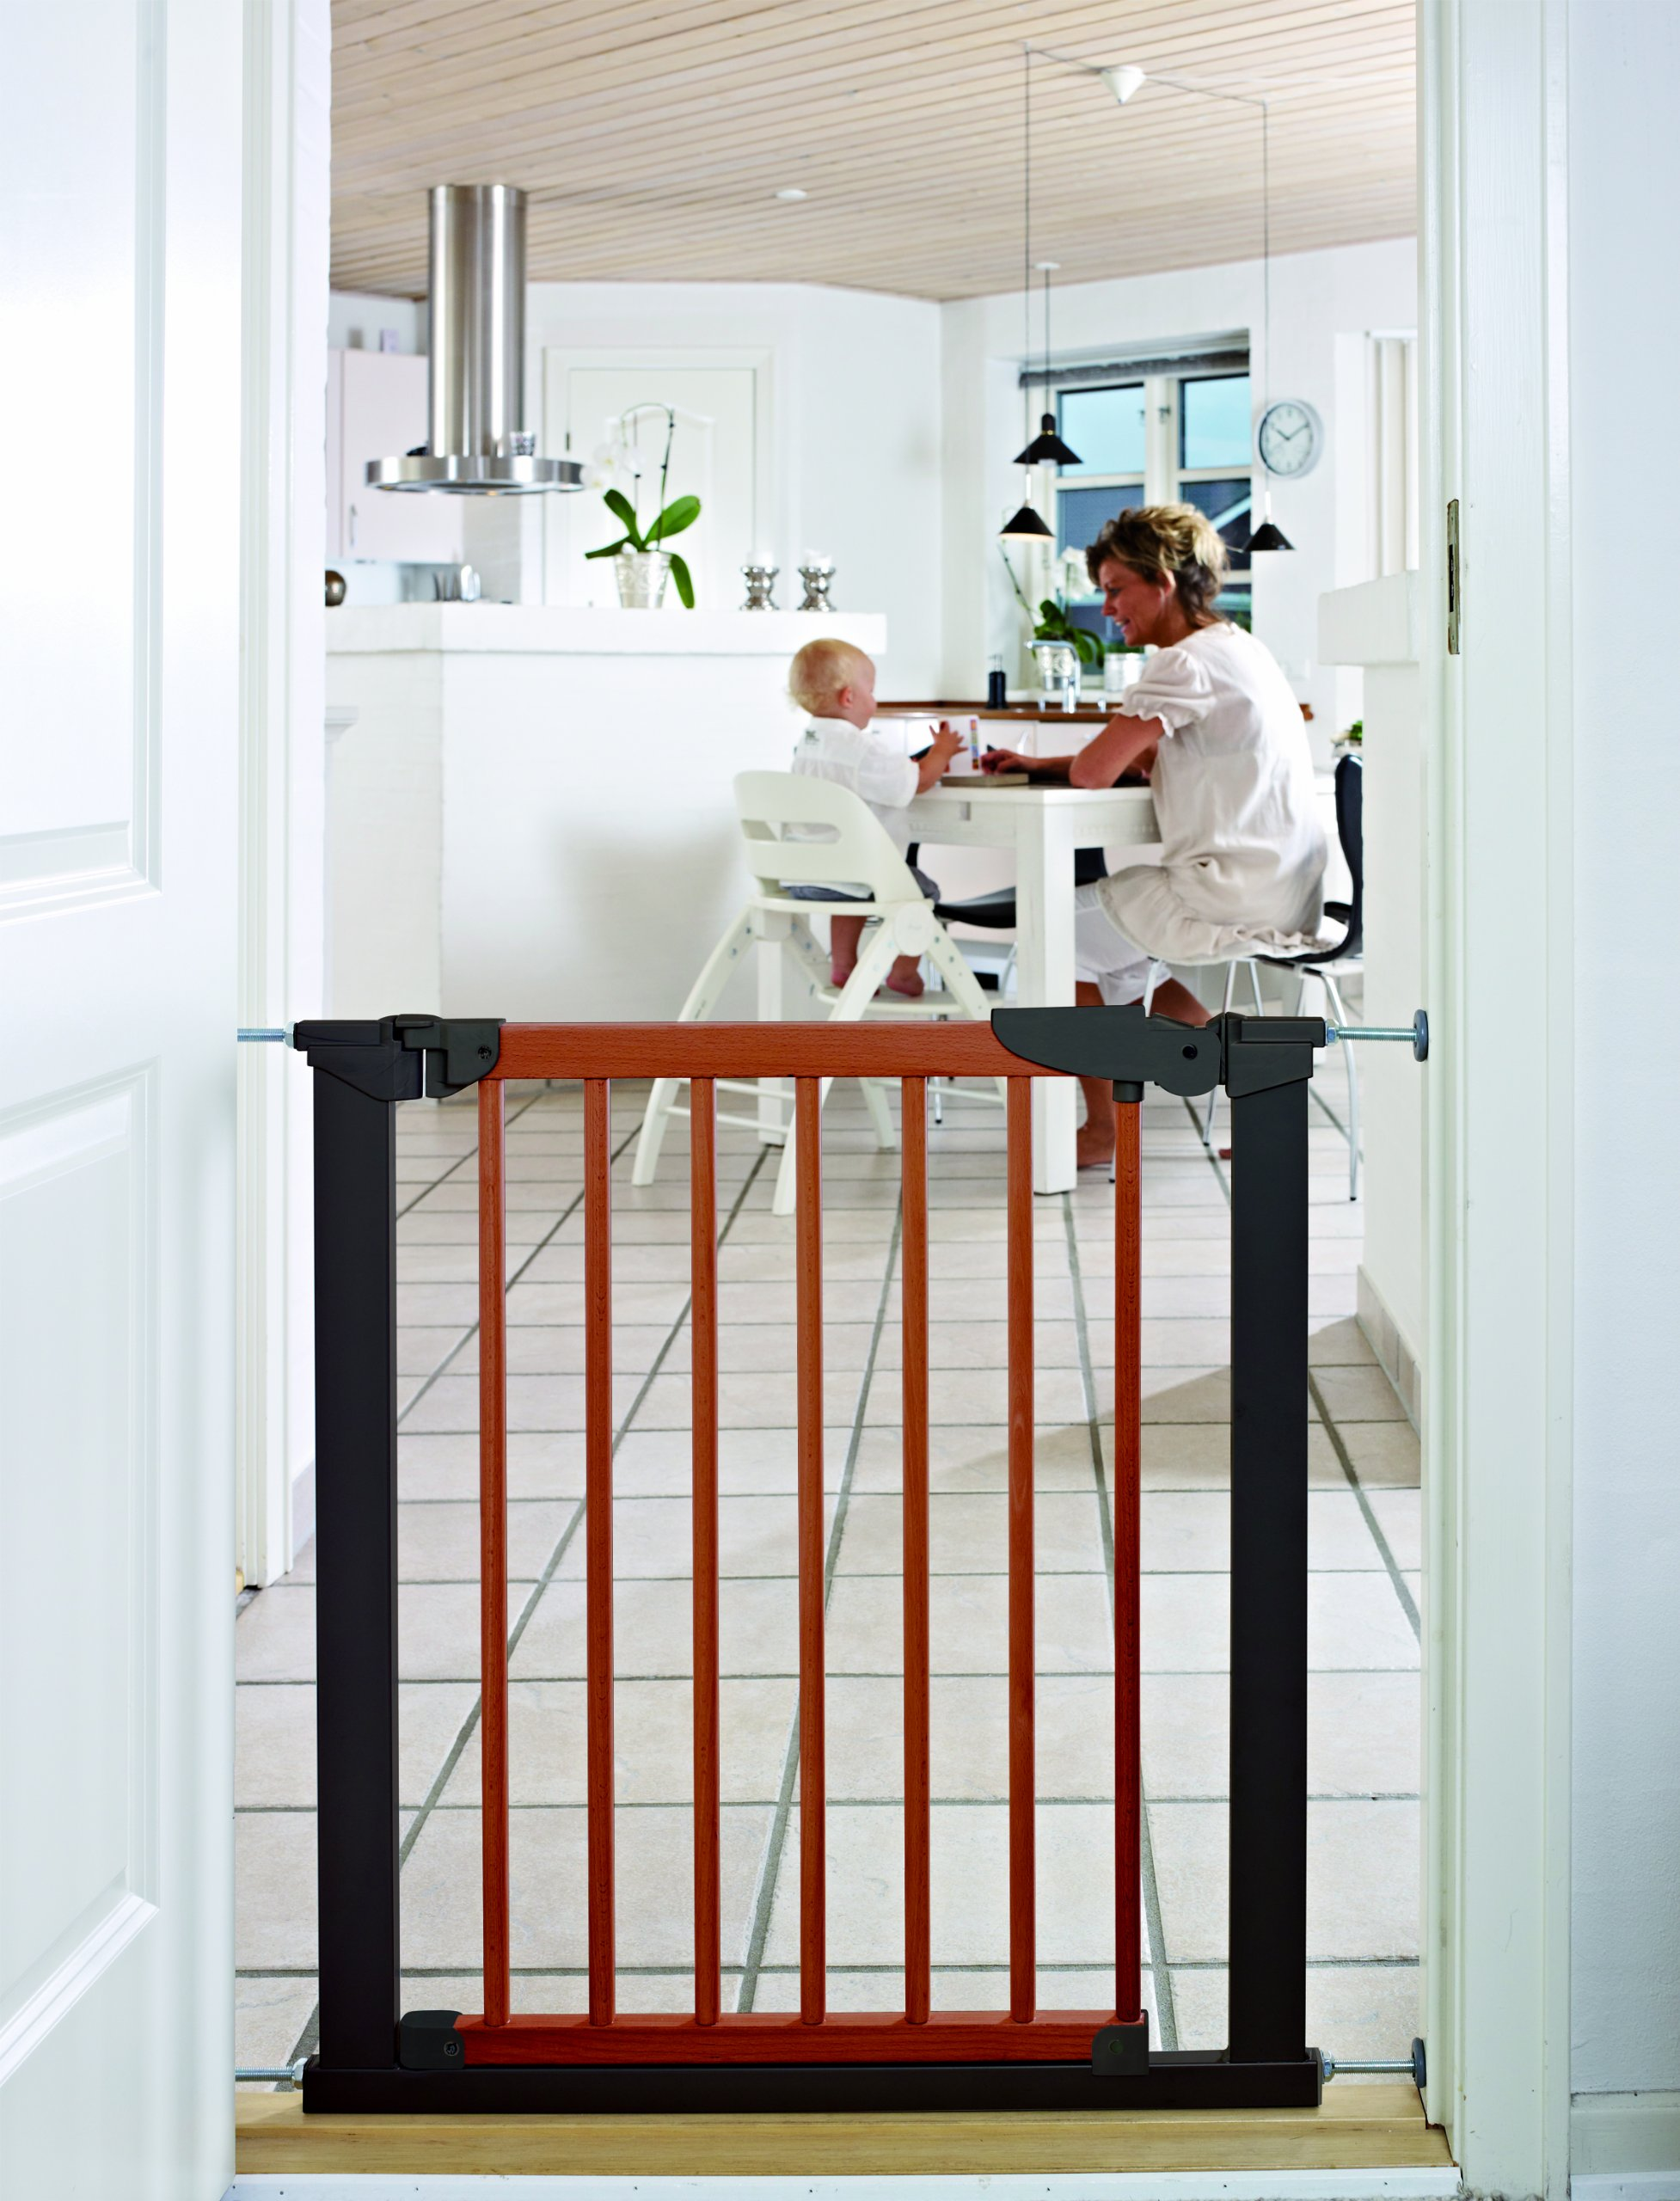 BabyDan Pressure Avantgarde Gate Hanger for door/Staircase 71,3-110,6cm Cherry/Black  Simple to build and comes complete with all fixings Made of metal and moved by a pressure fixing system Includes stop pins for mounting at the top of stairs 2